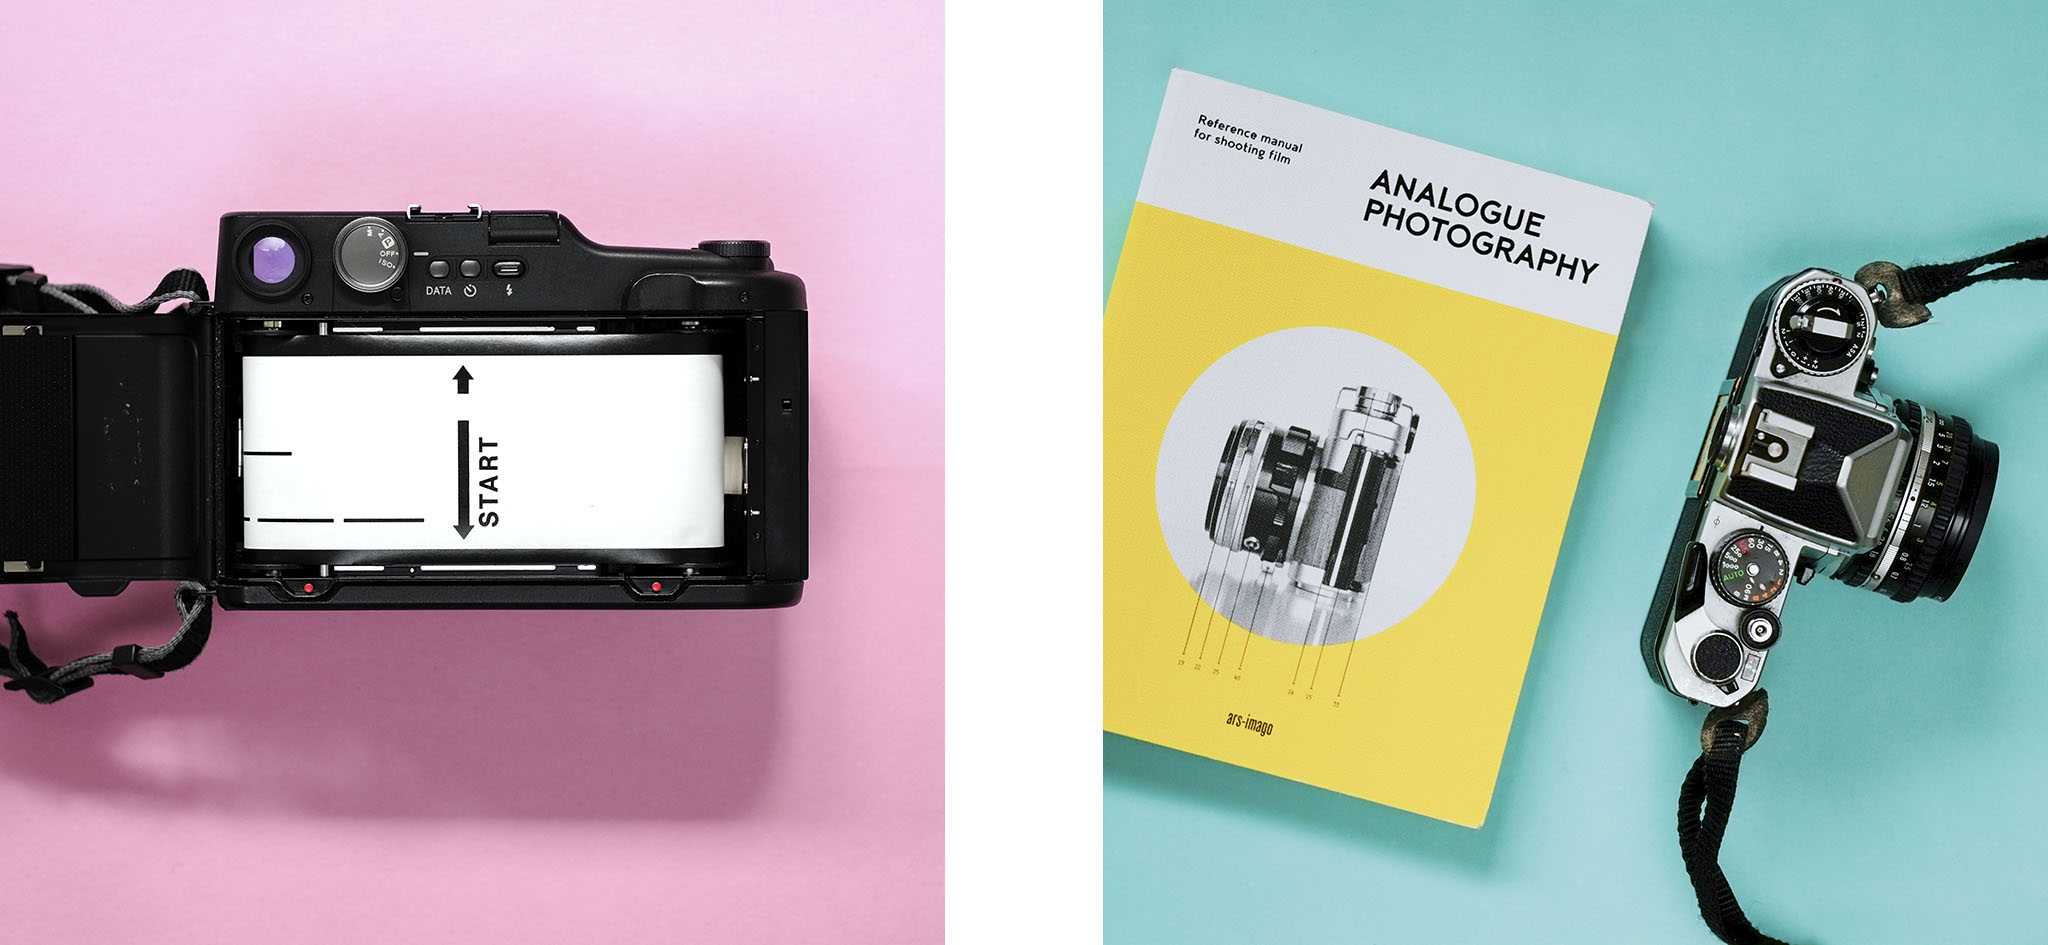 A Beginners Guide To Film Photography. Shooting Film Medium Format Analogue Photography Manual